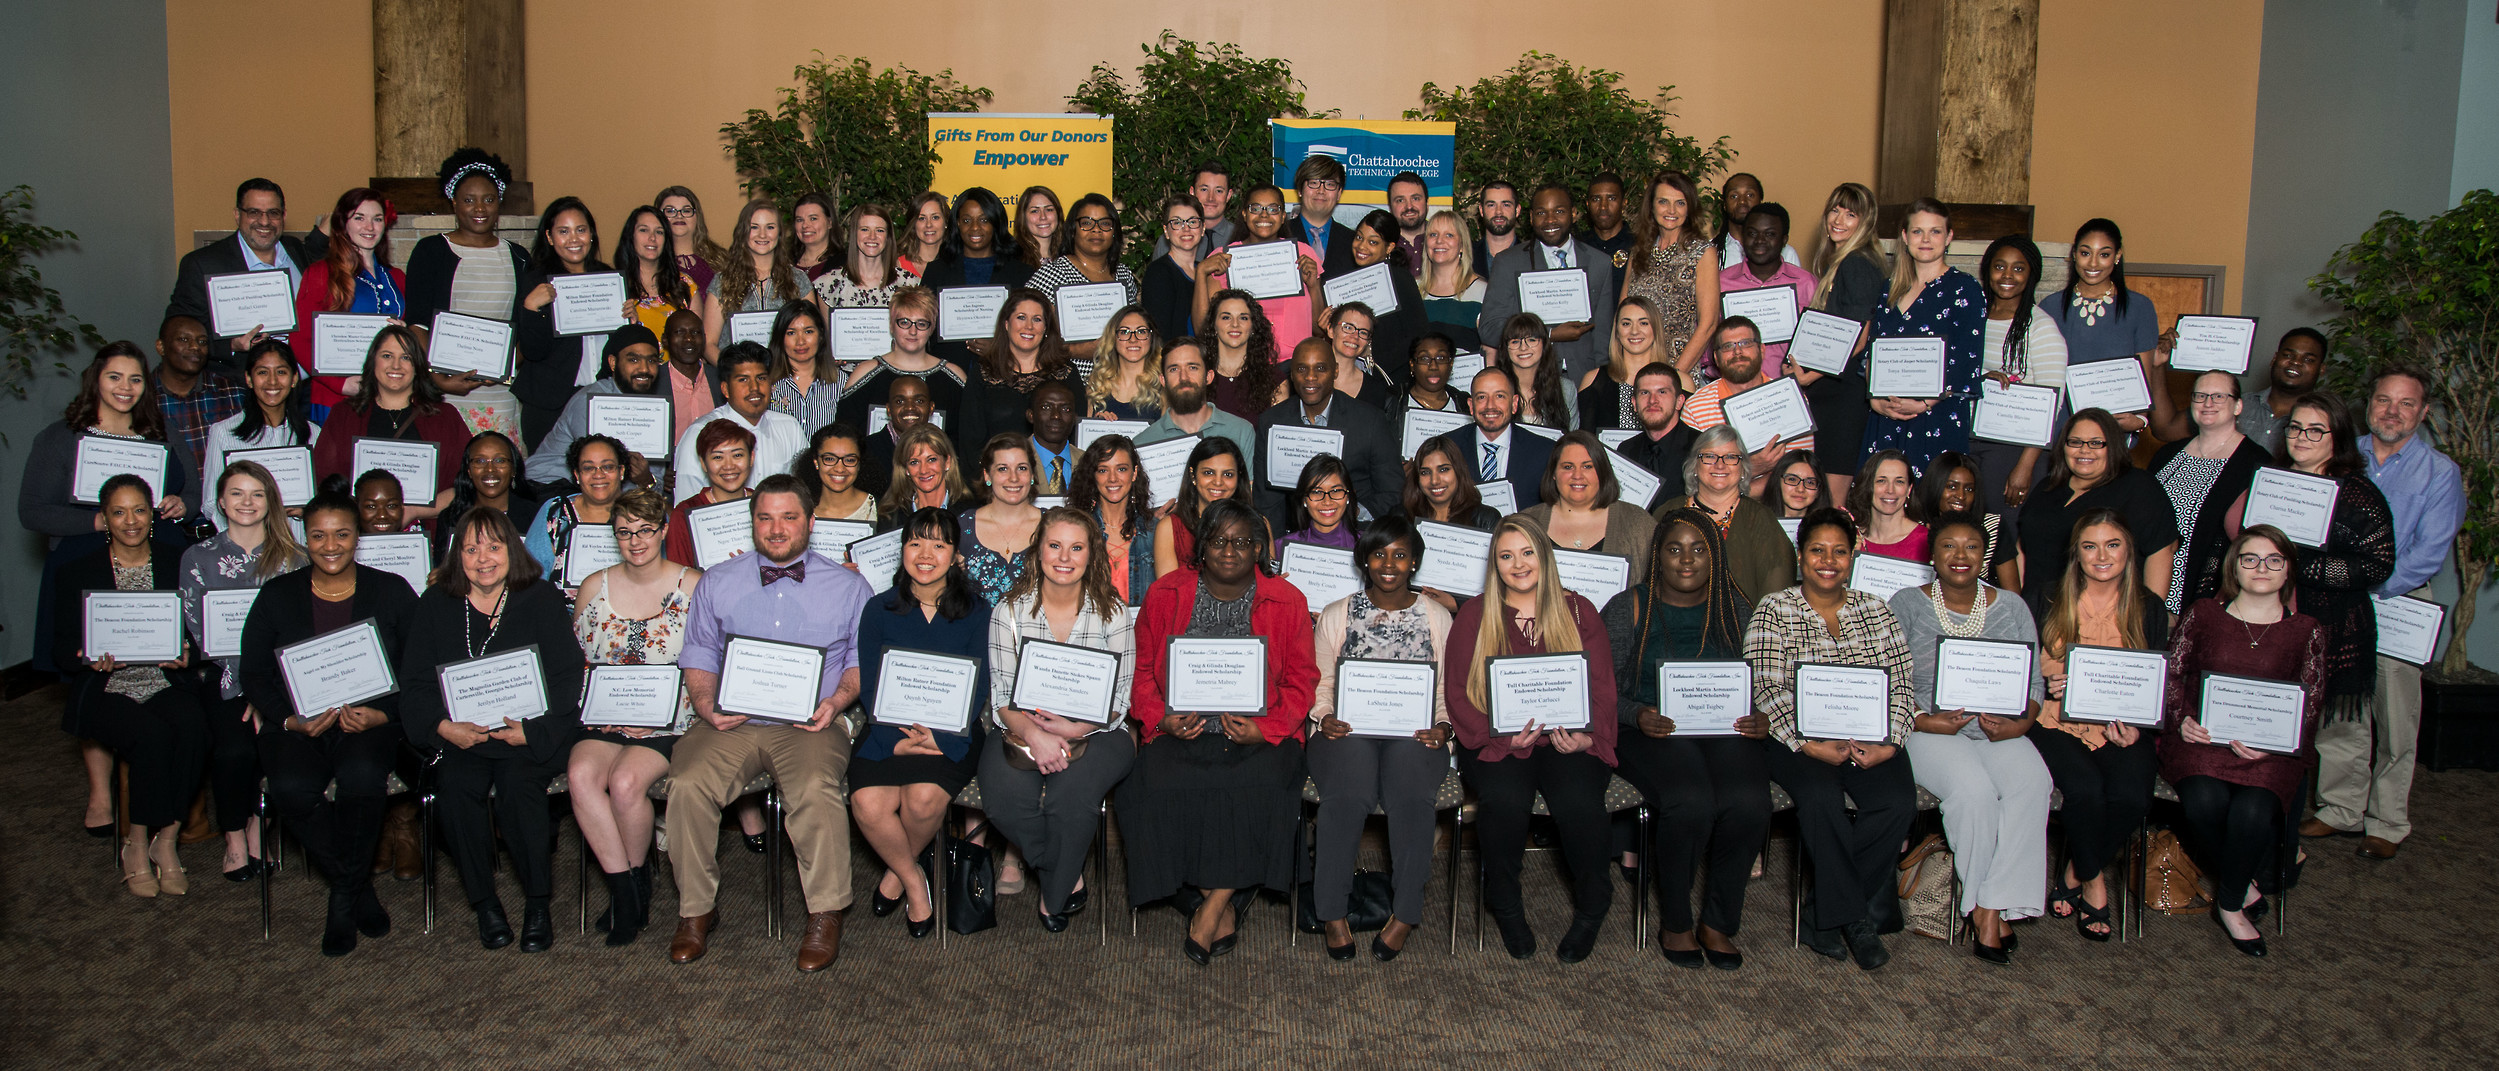 Foundation Awards 98 Scholarships To Deserving Ctc Students The